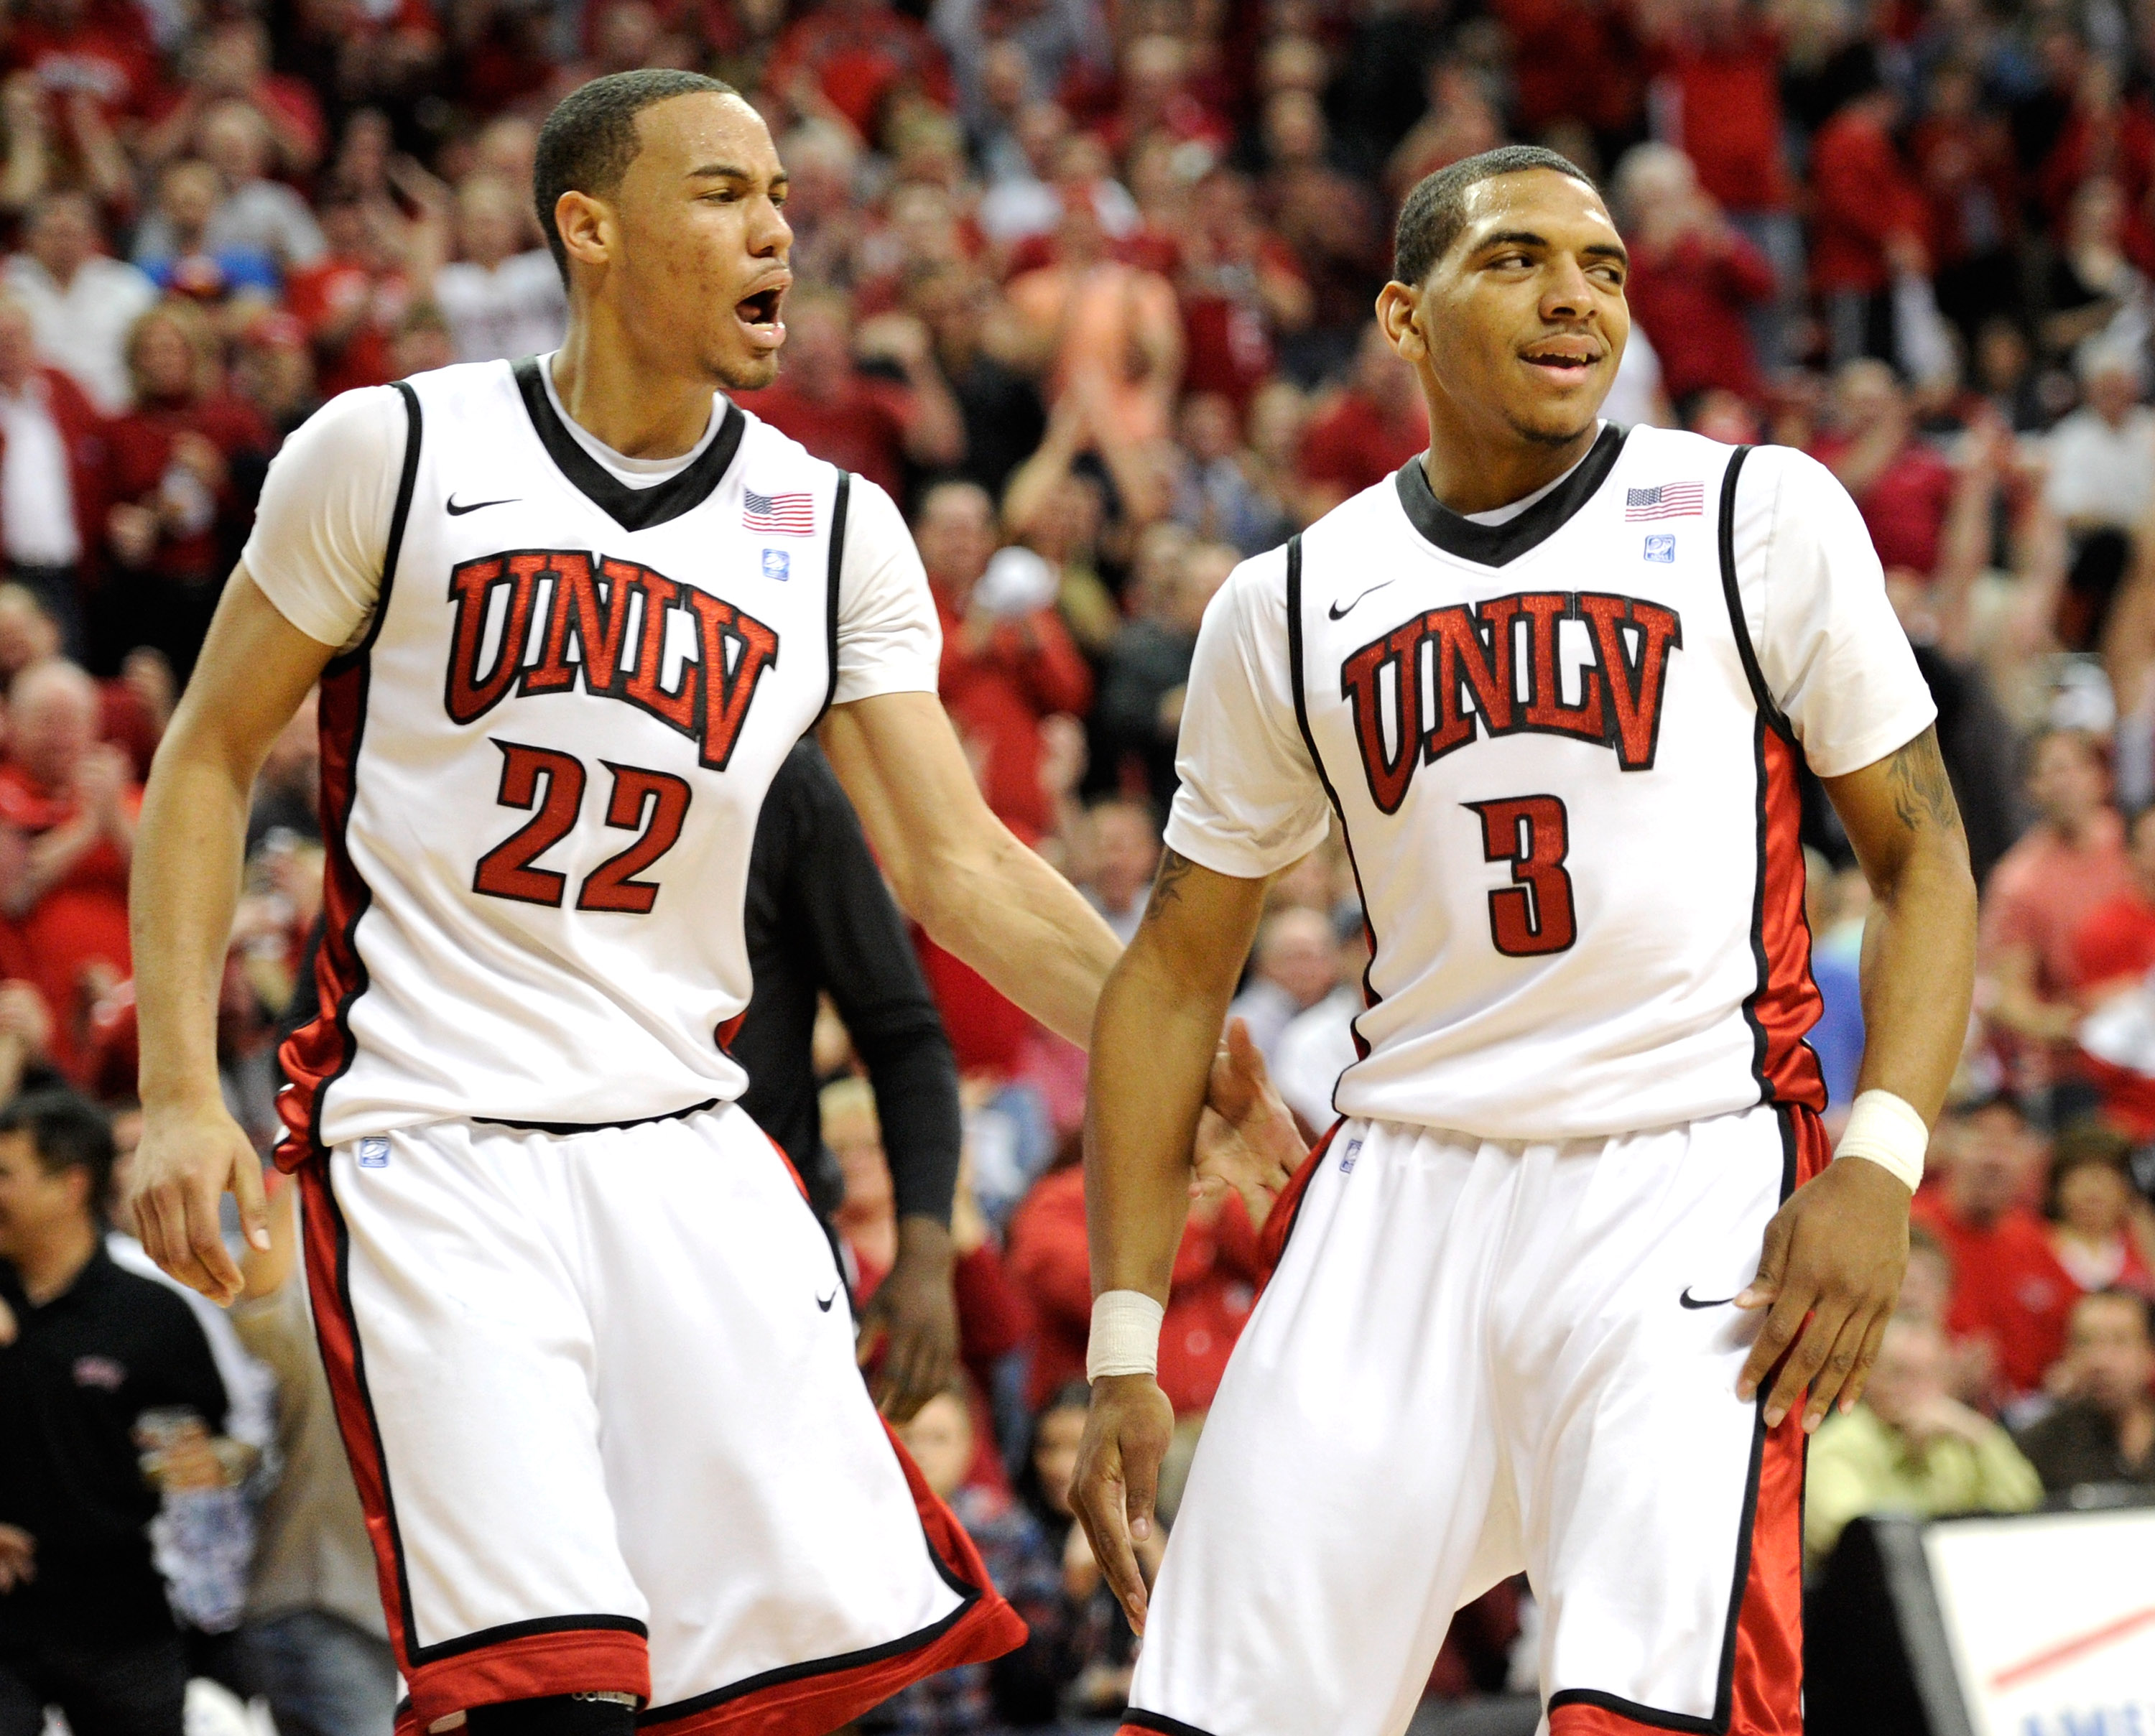 LAS VEGAS, NV - FEBRUARY 12:  Chace Stanback #22 and Anthony Marshall #3 of the UNLV Rebels react after Marshall took an offensive charge for a San Diego State Aztecs foul during their game at the Thomas & Mack Center February 12, 2011 in Las Vegas, Nevad